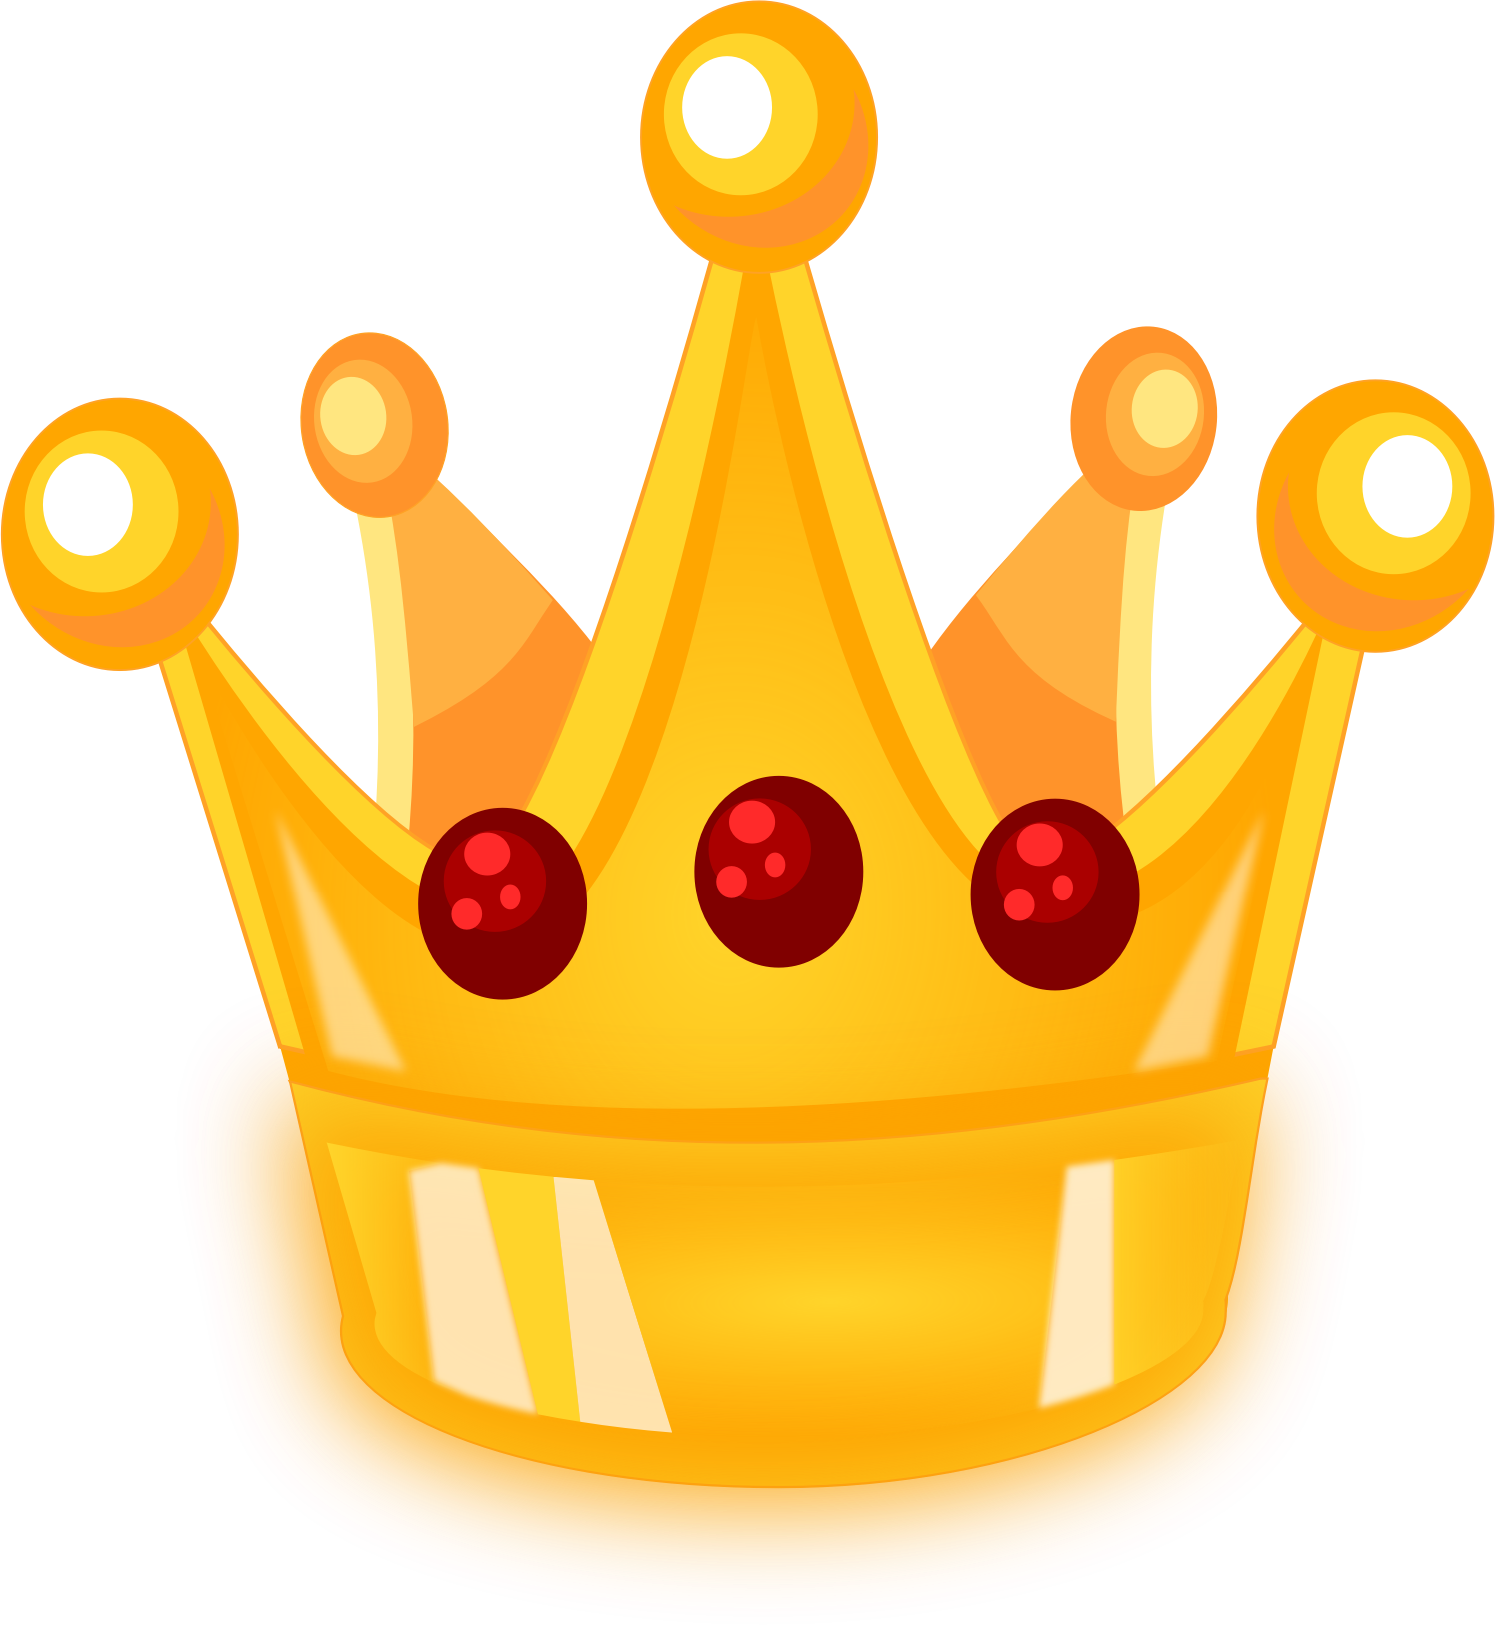 Royal with no background. Number 1 clipart crown